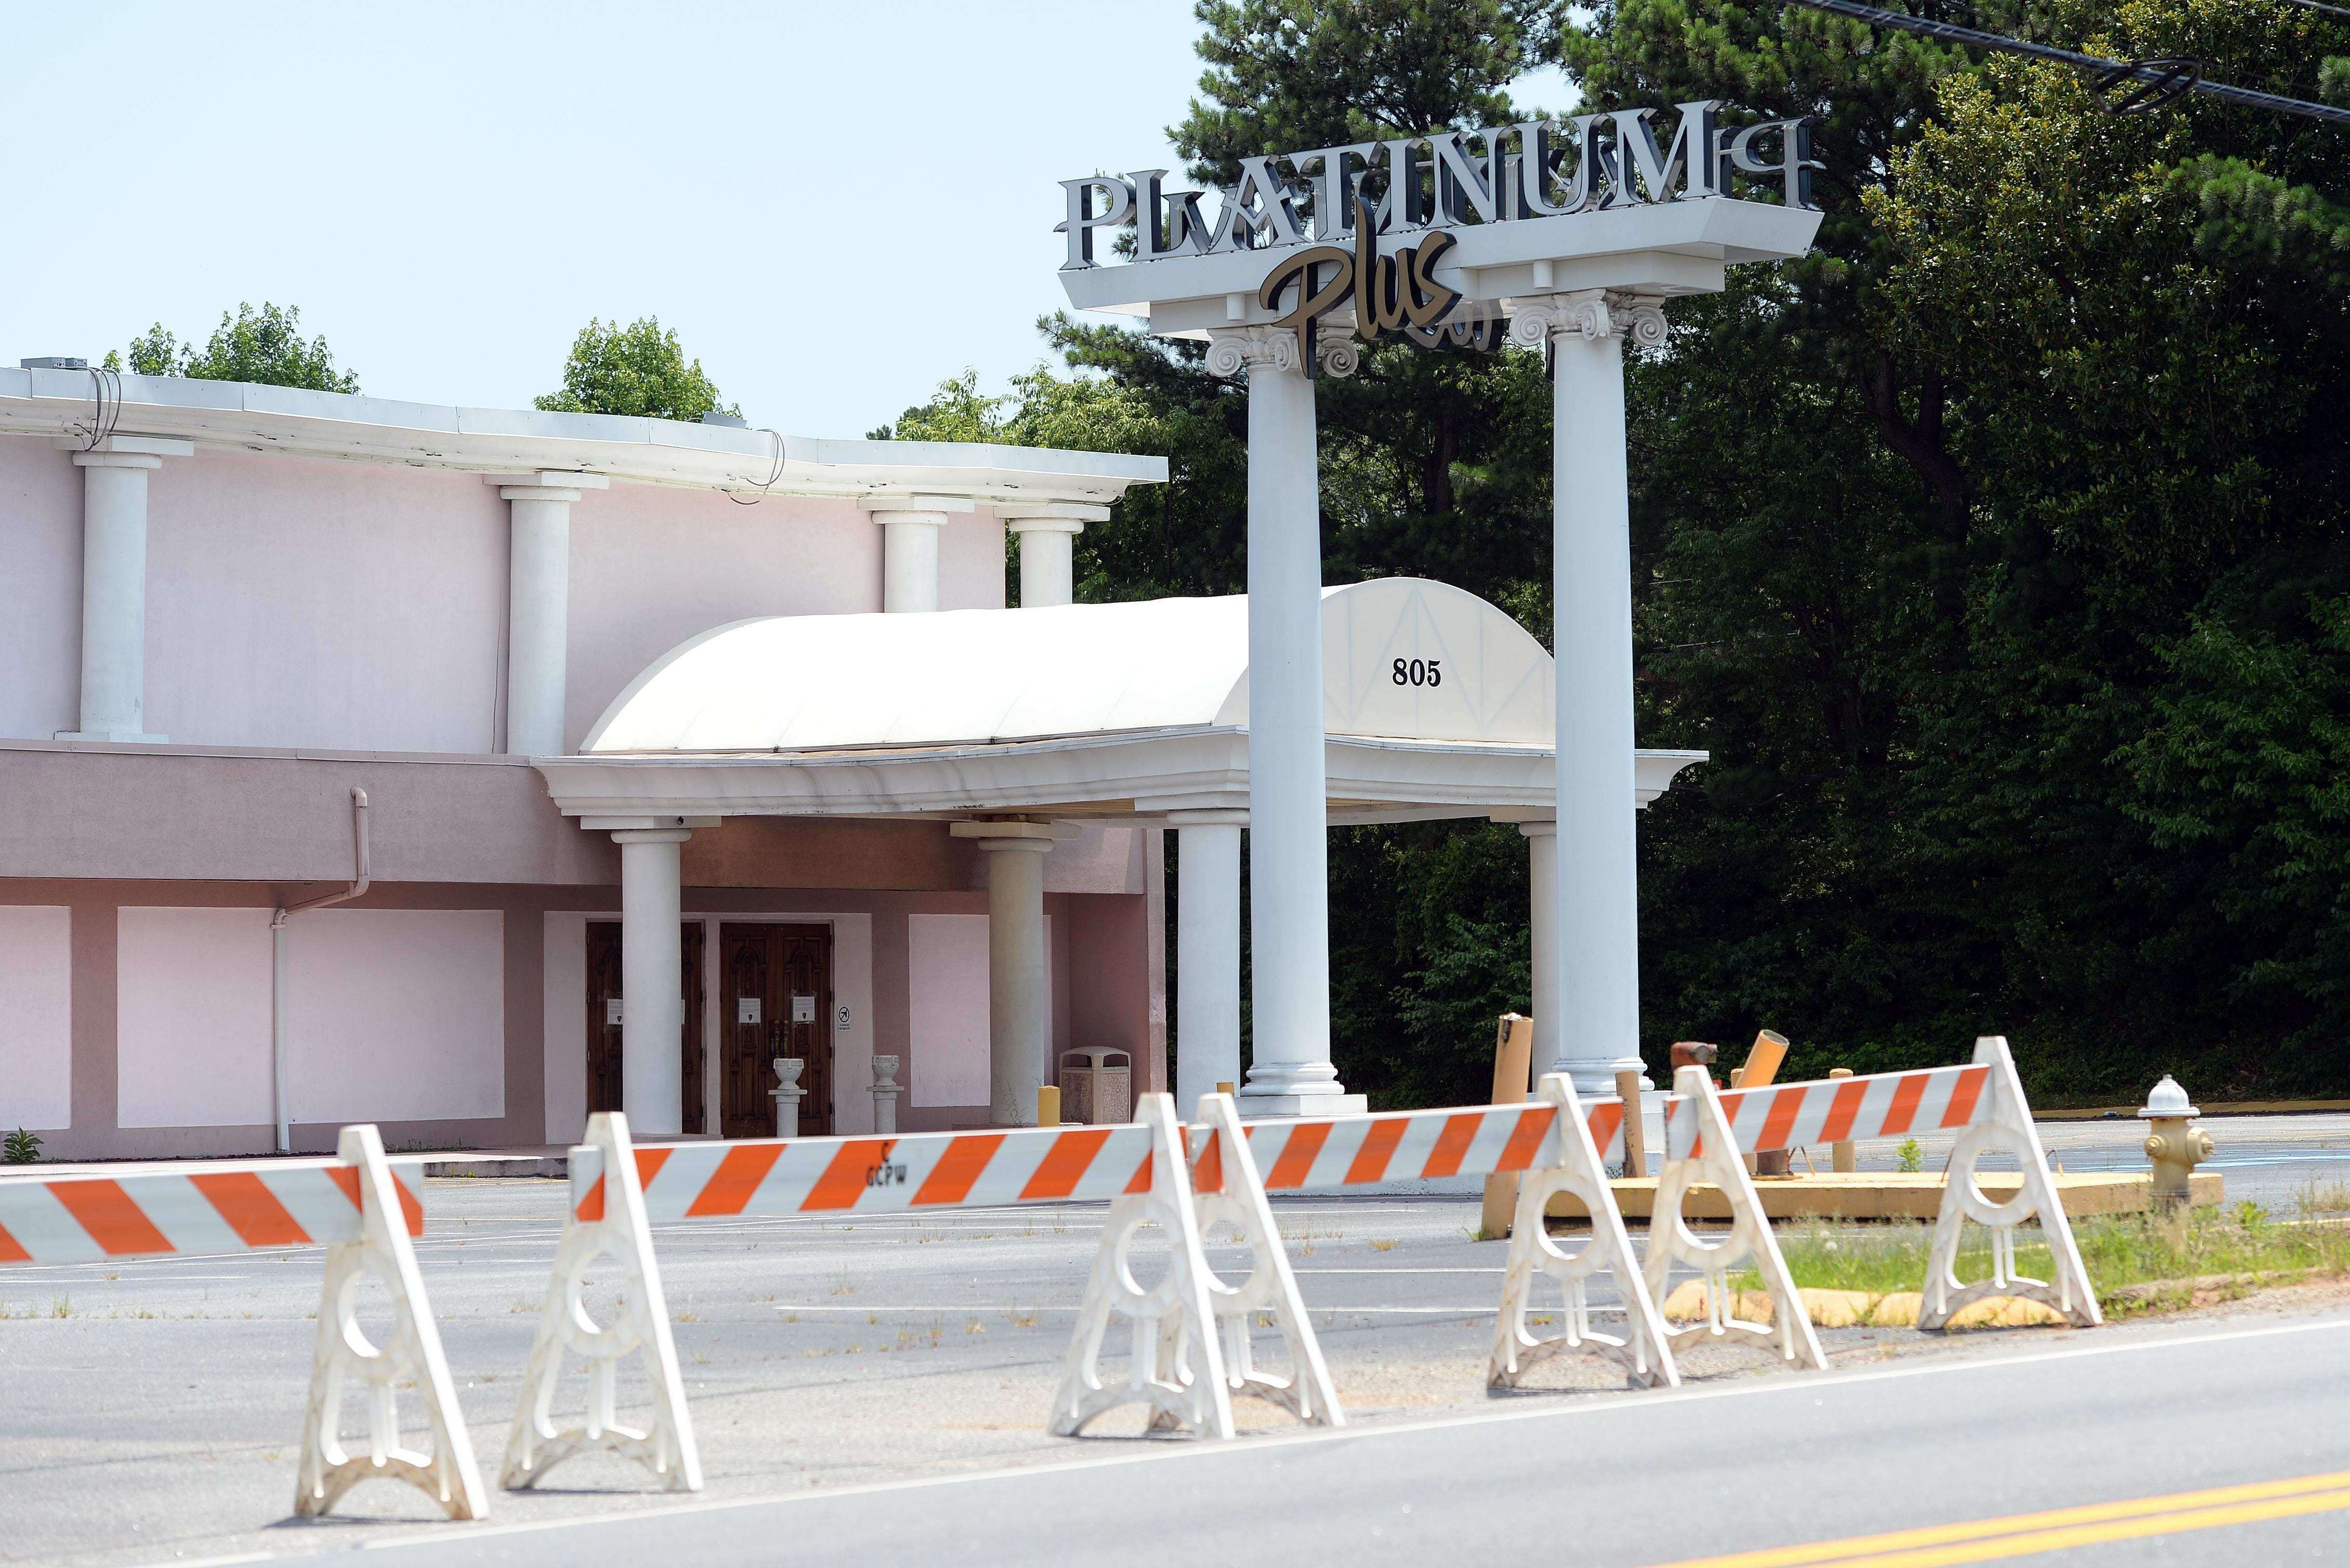 Greenville county detention center former inmates and dating